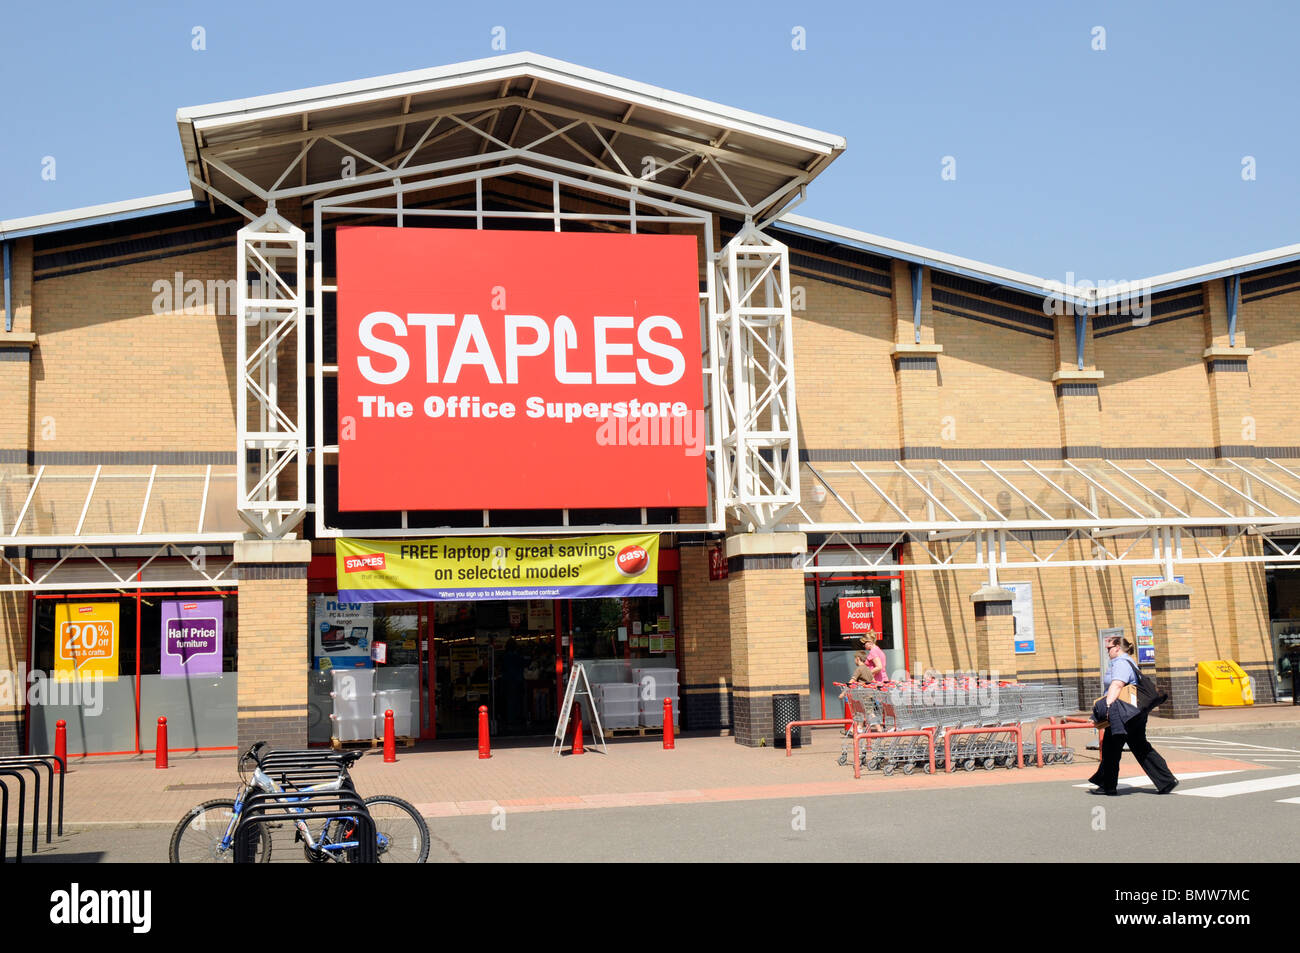 Staples, the office superstore, Retail Park, Peterborough. - Stock Image